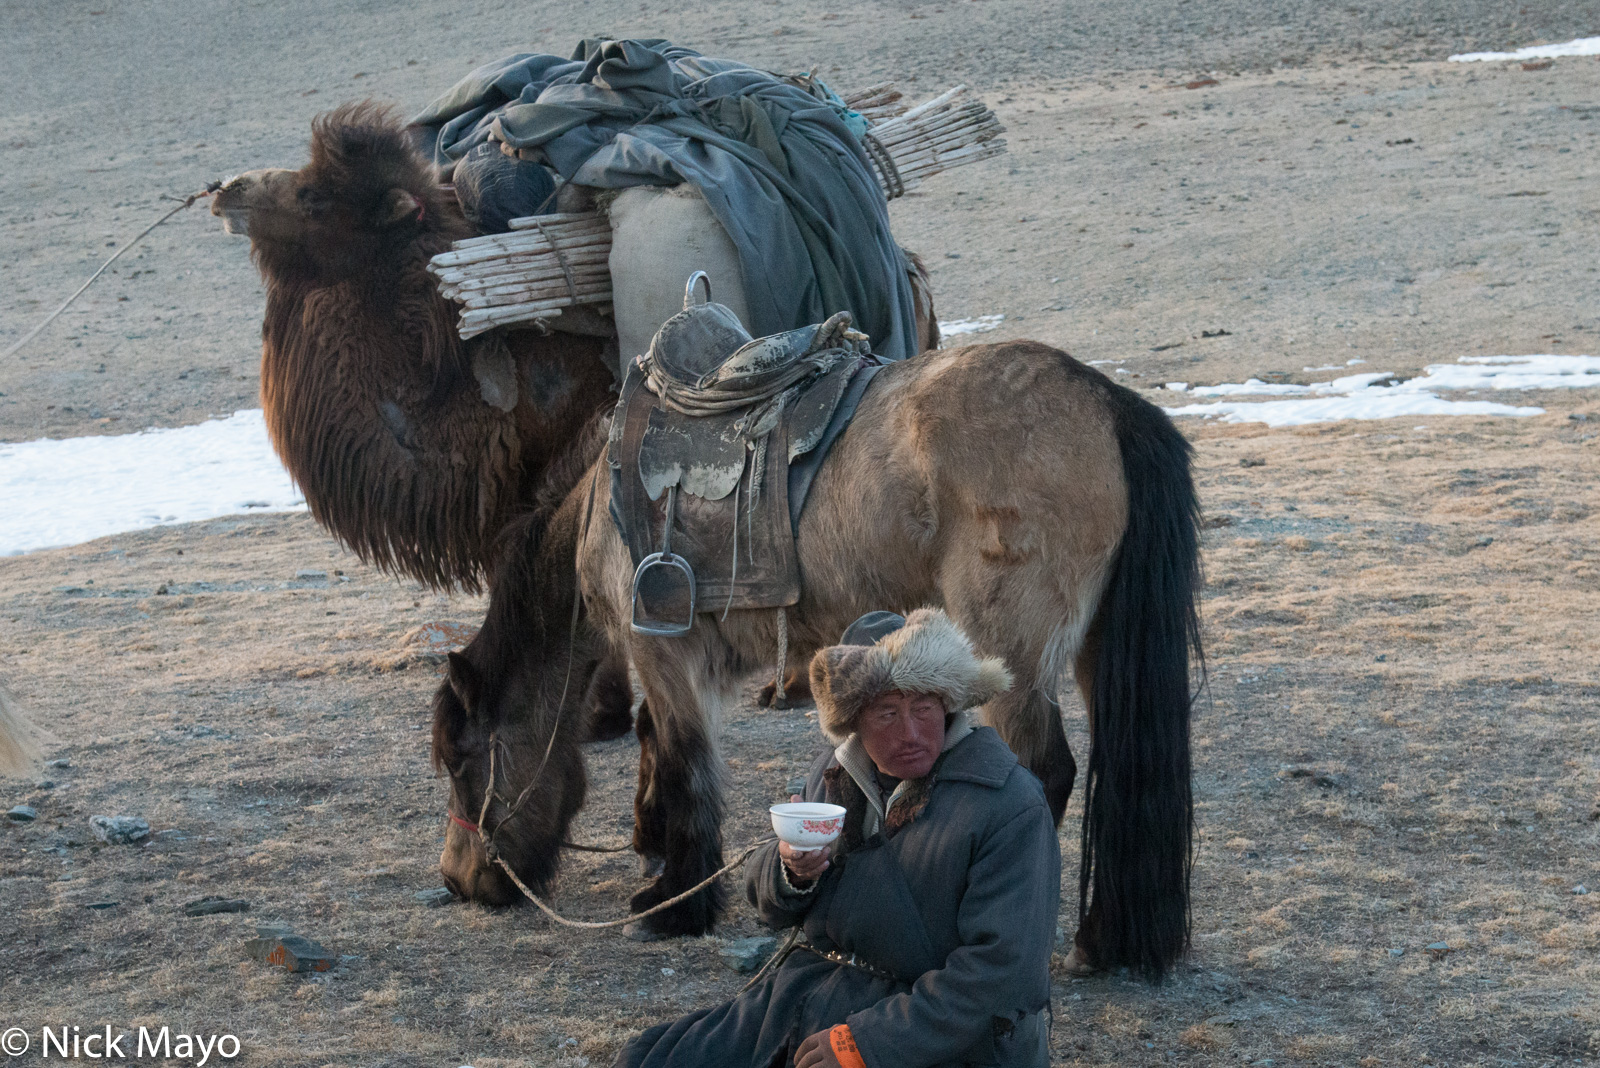 Bayan-Ölgii, Camel, Drinking, Horse, Kazakh, Mongolia, Pack Animal, Tea, photo